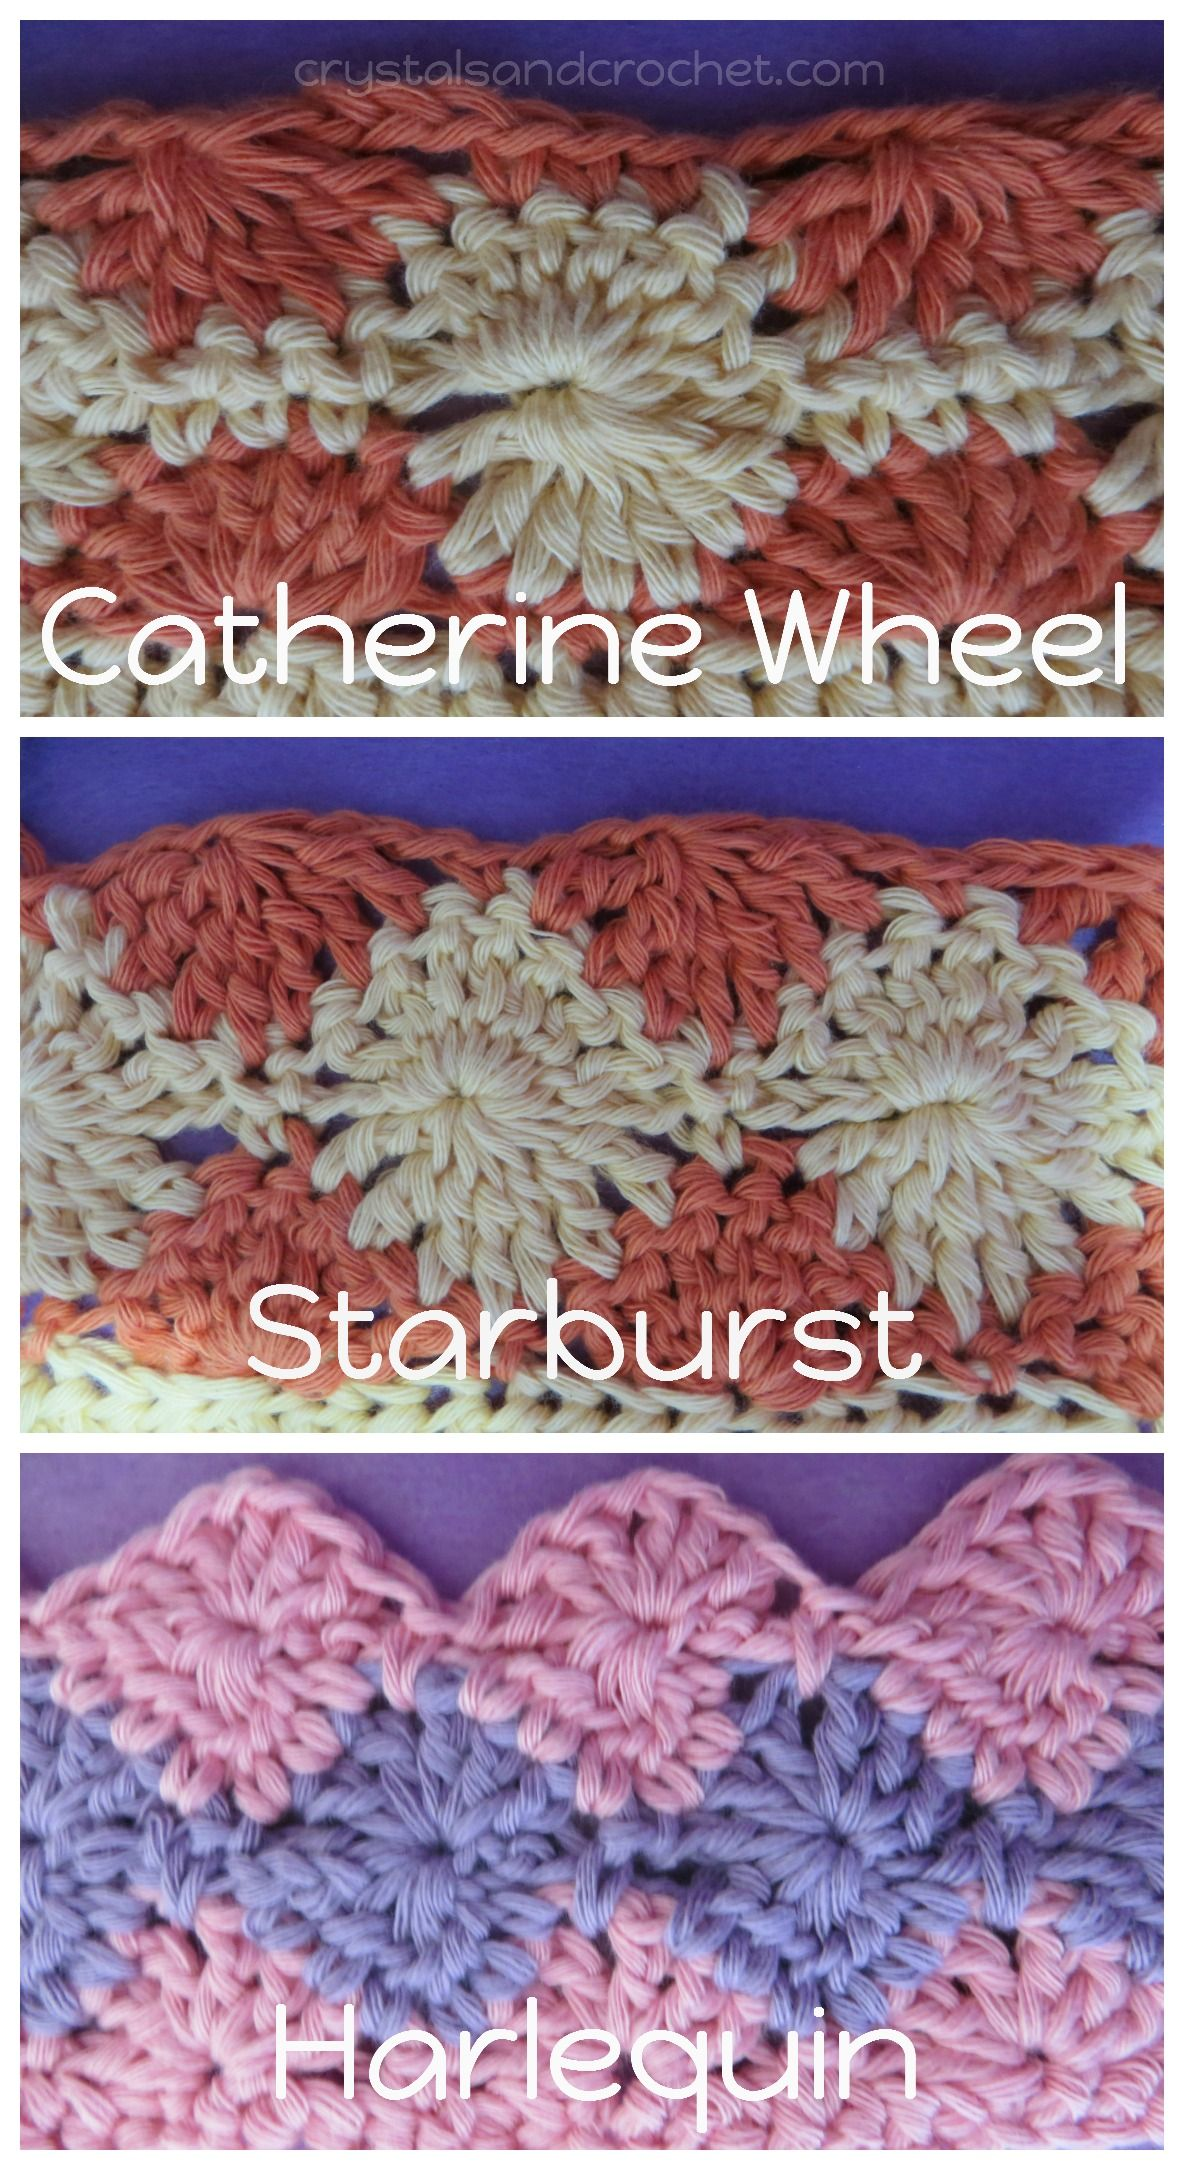 Level Your Skill Up With These Crochet Radial Increased Stitches